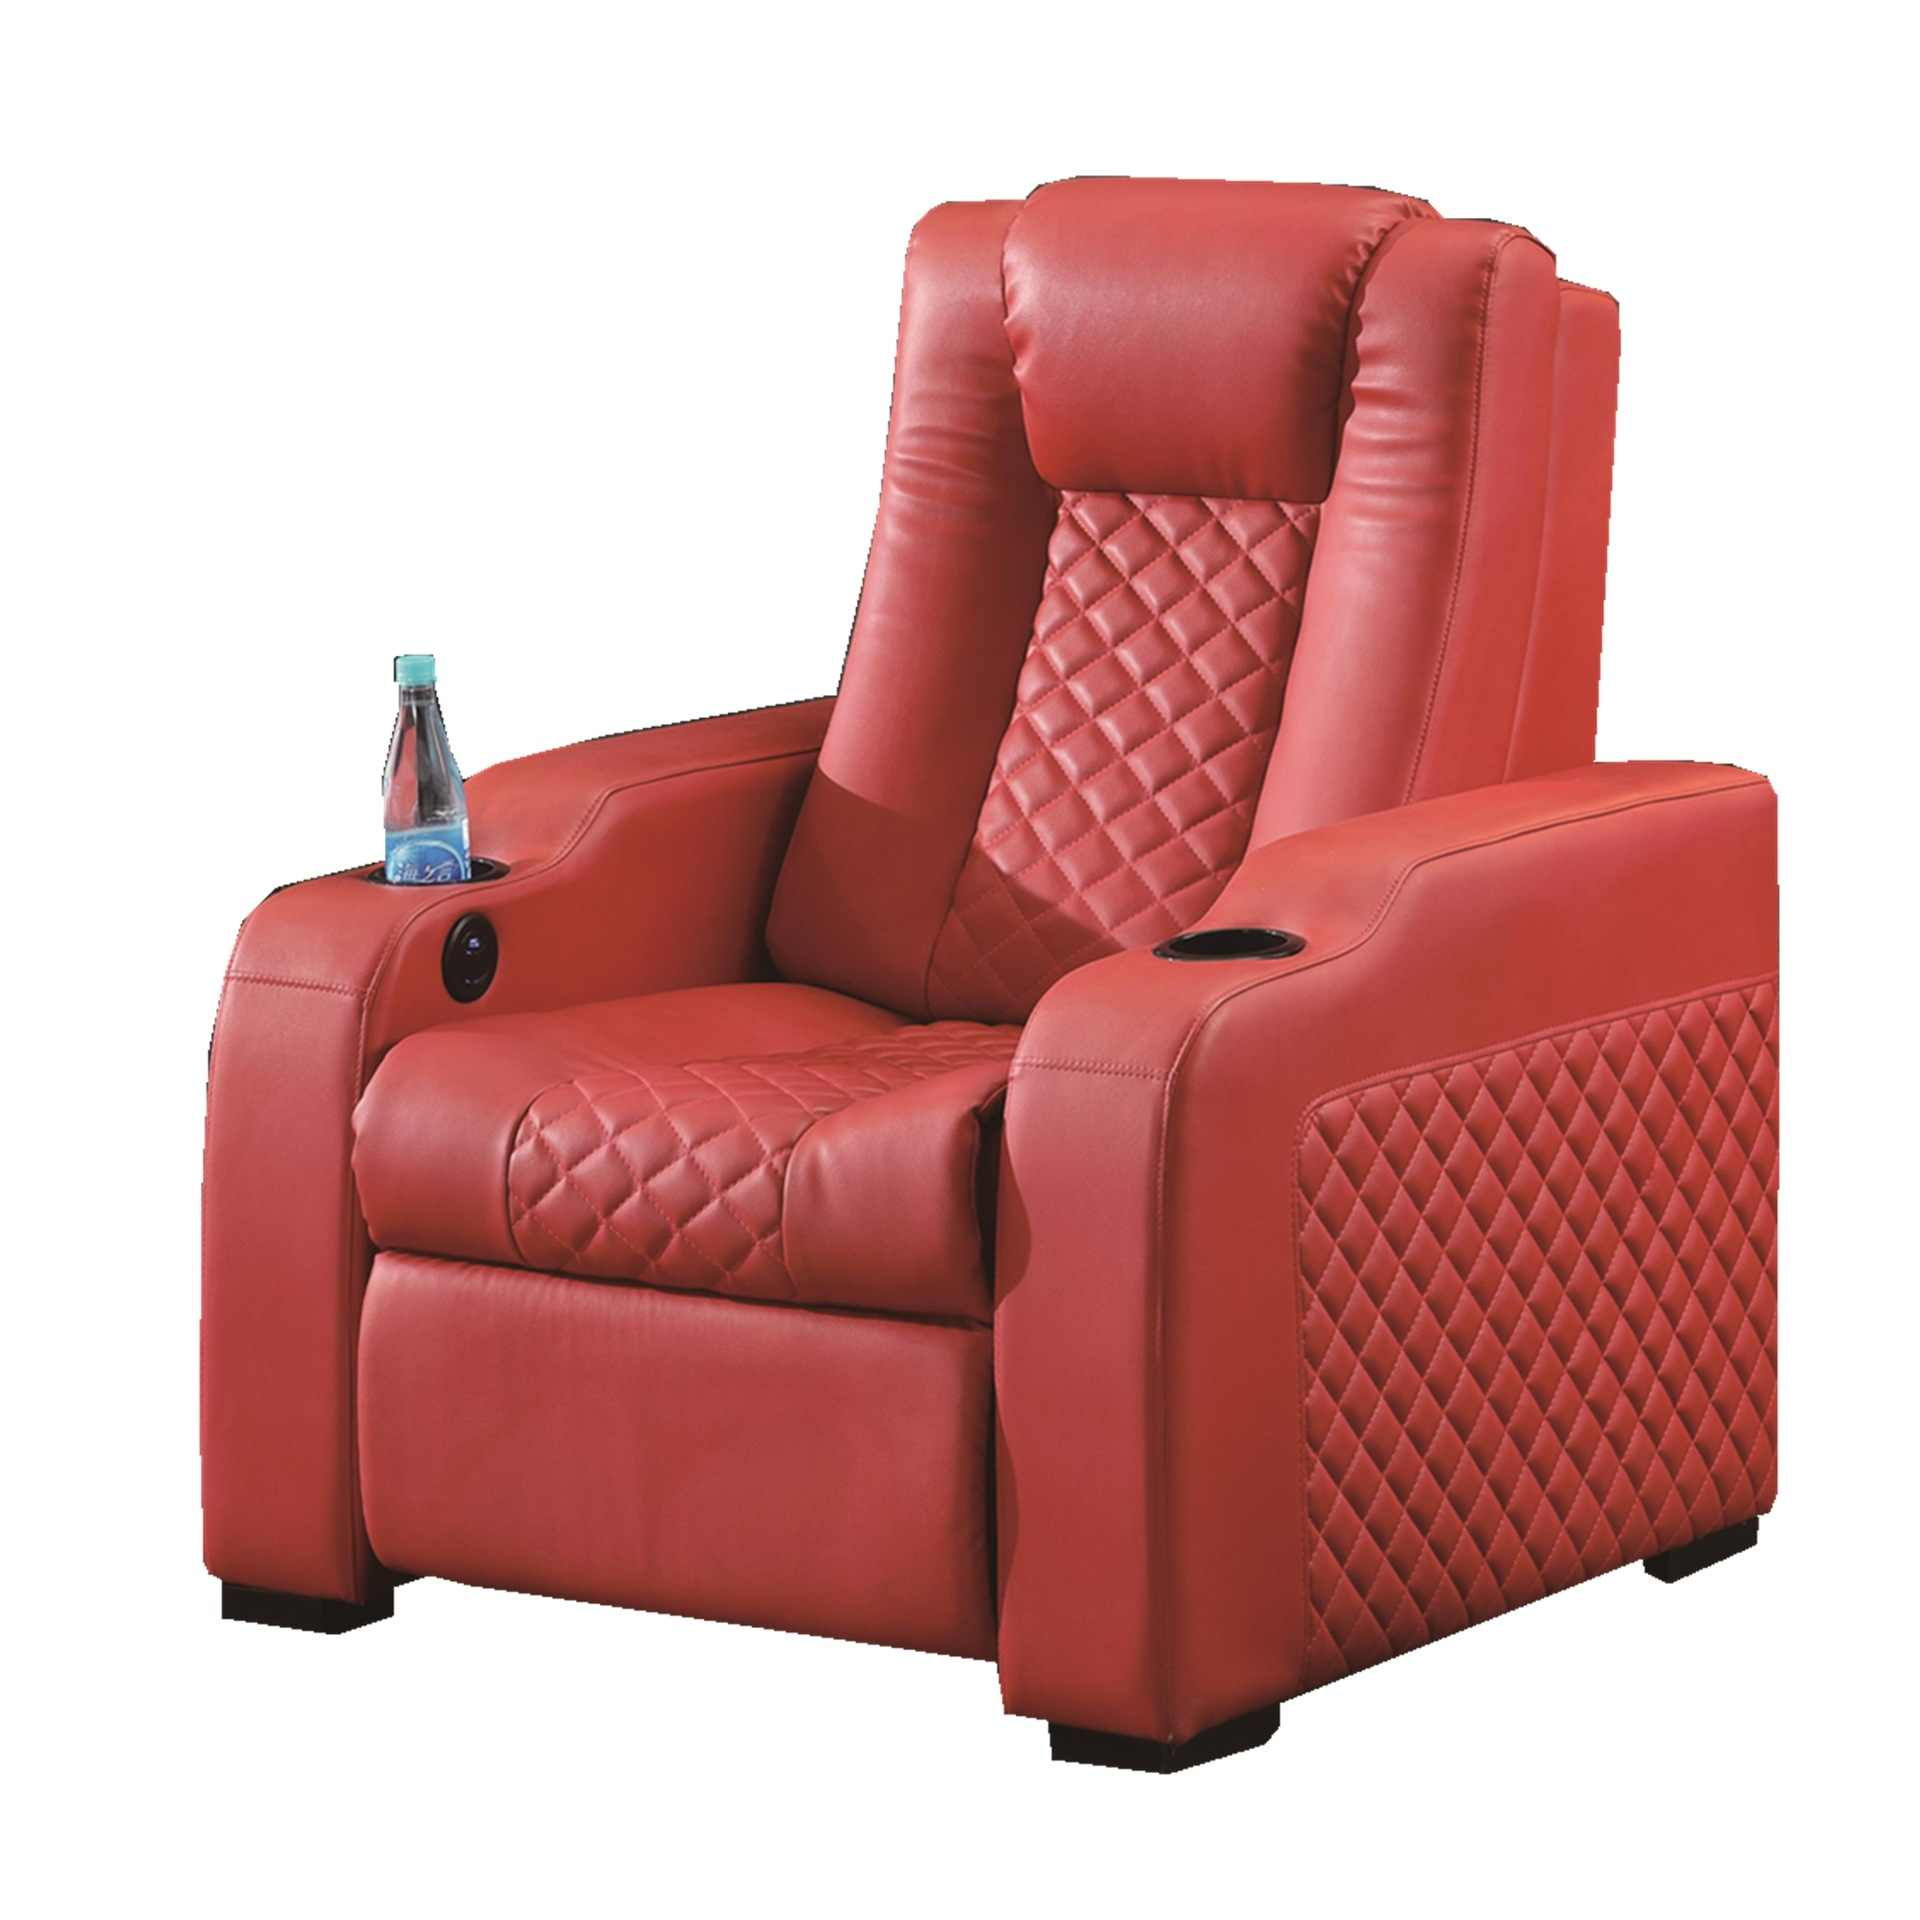 Factory Production Of Modern Minimalist Leather Movie Theater Sofa Single Chair Small Apartment Leather Home Theater Sofa Aliexpress